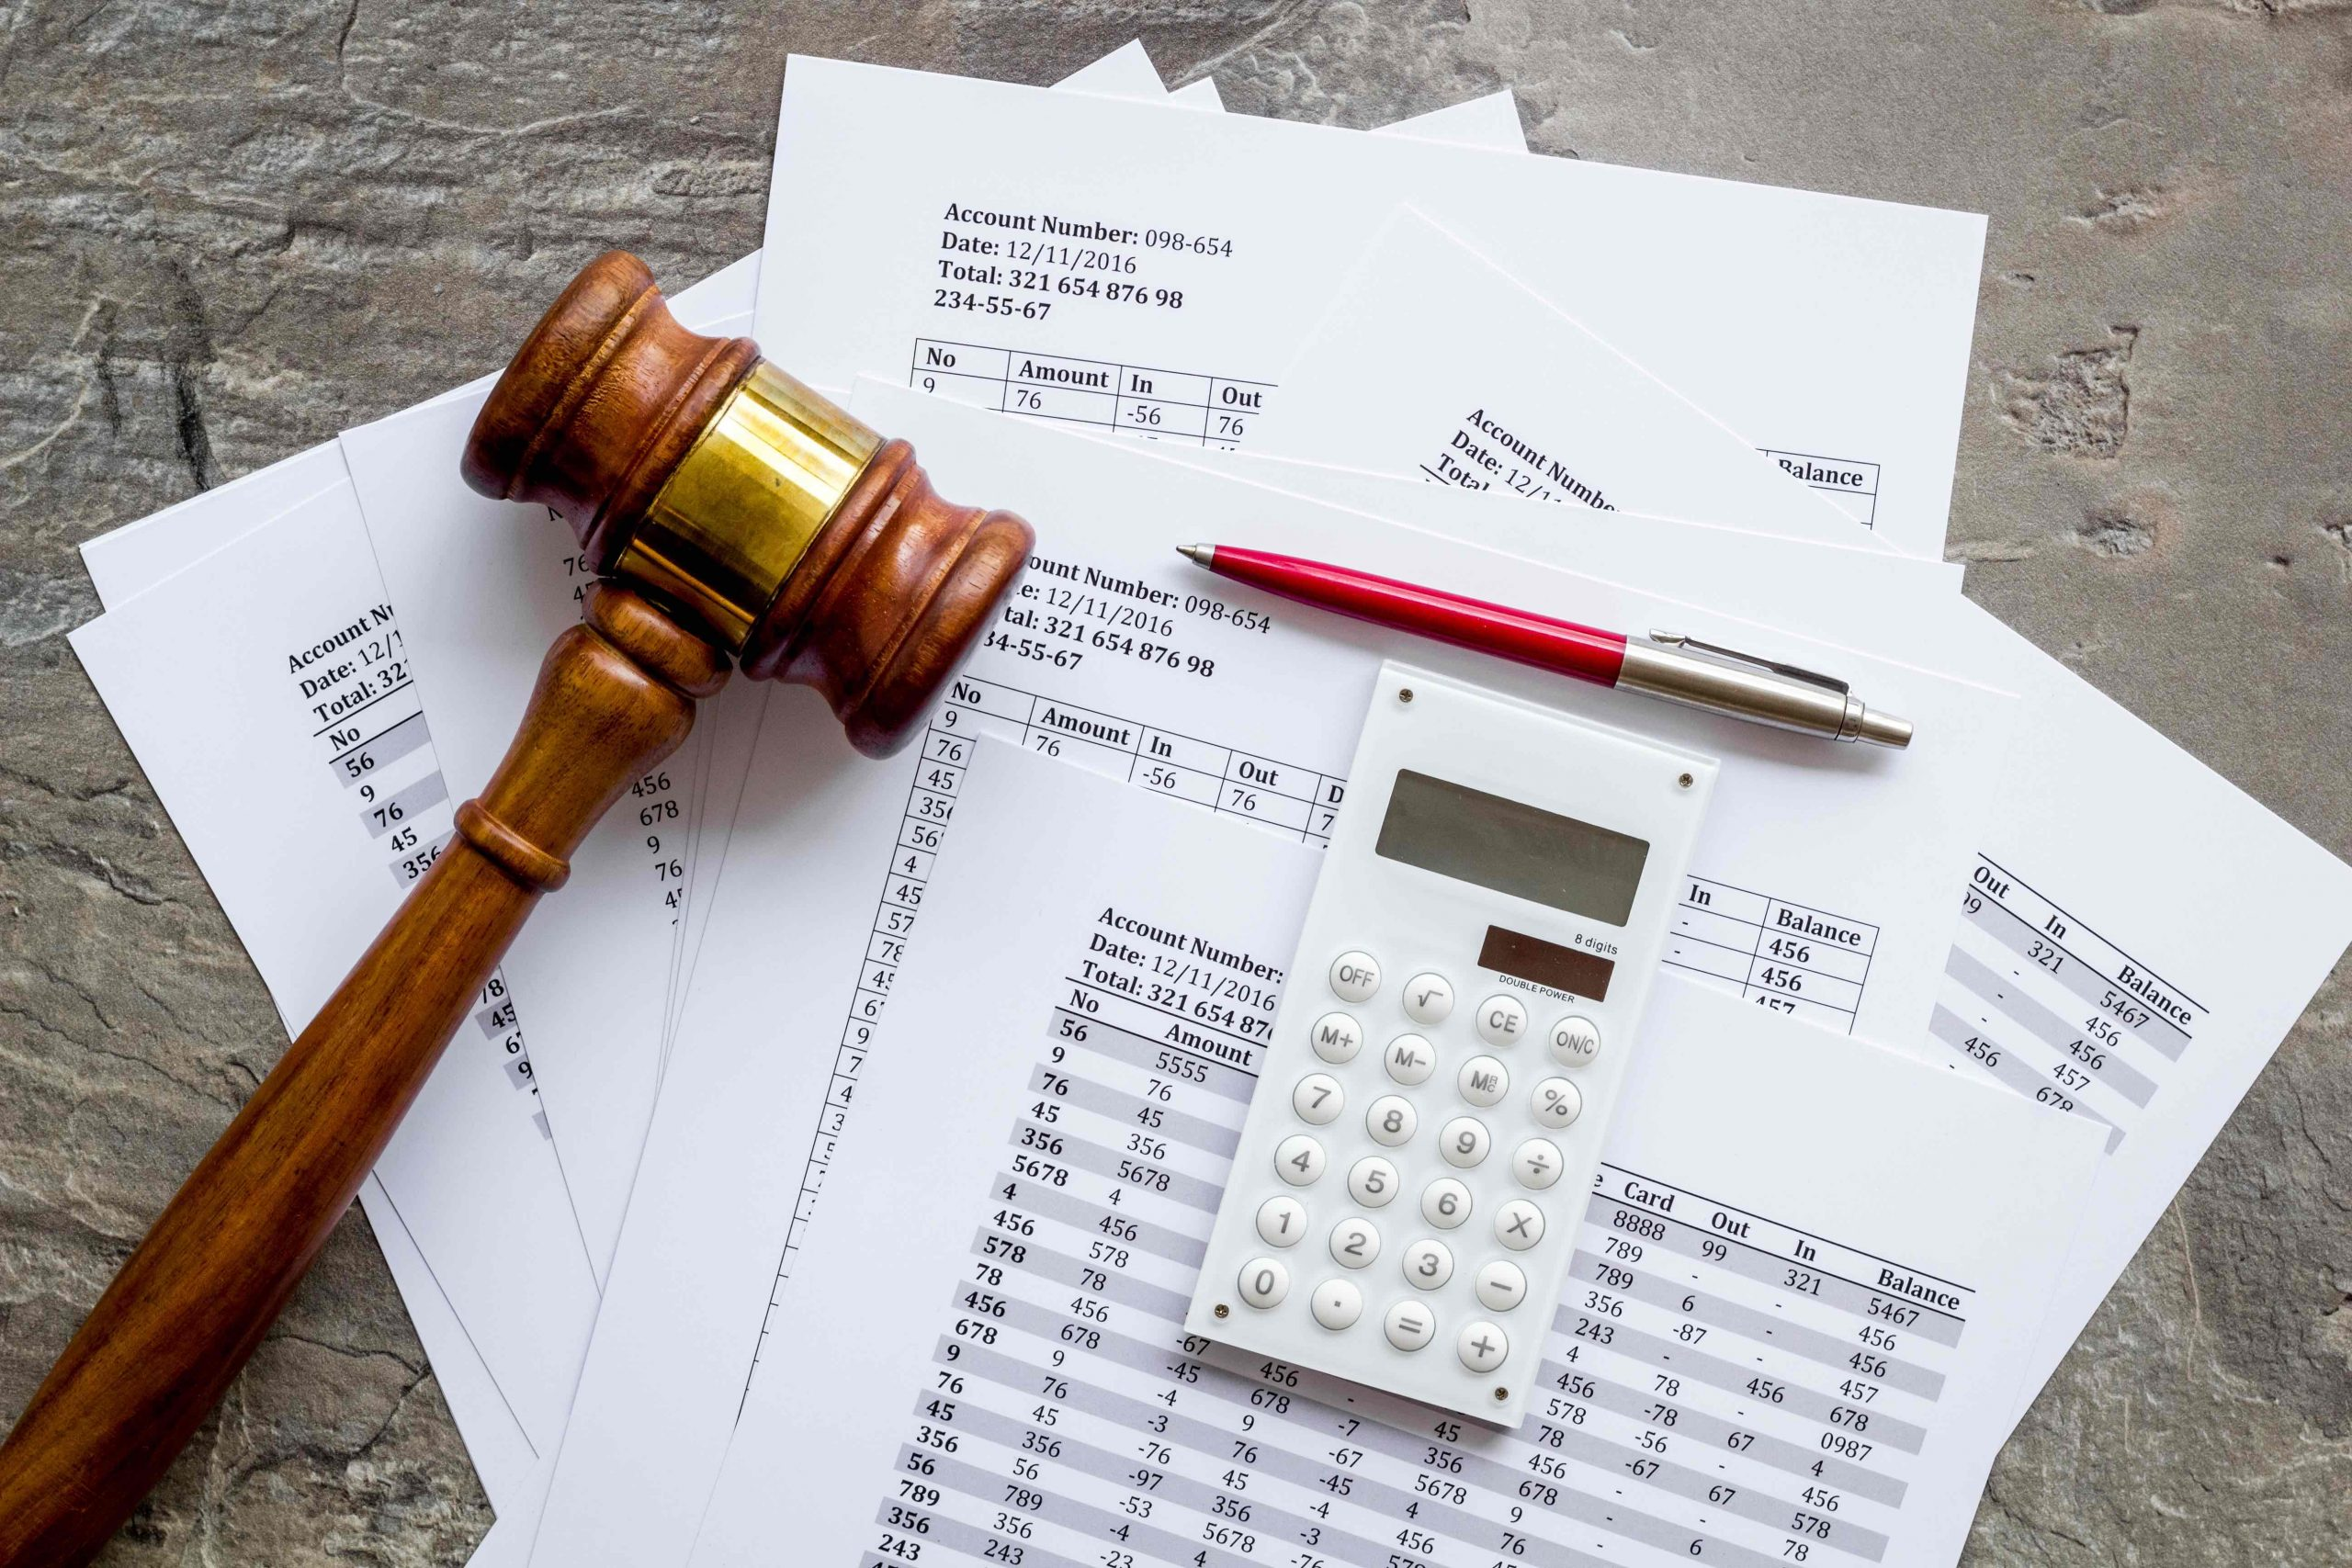 Top 10 Reasons for Bankruptcy Filings